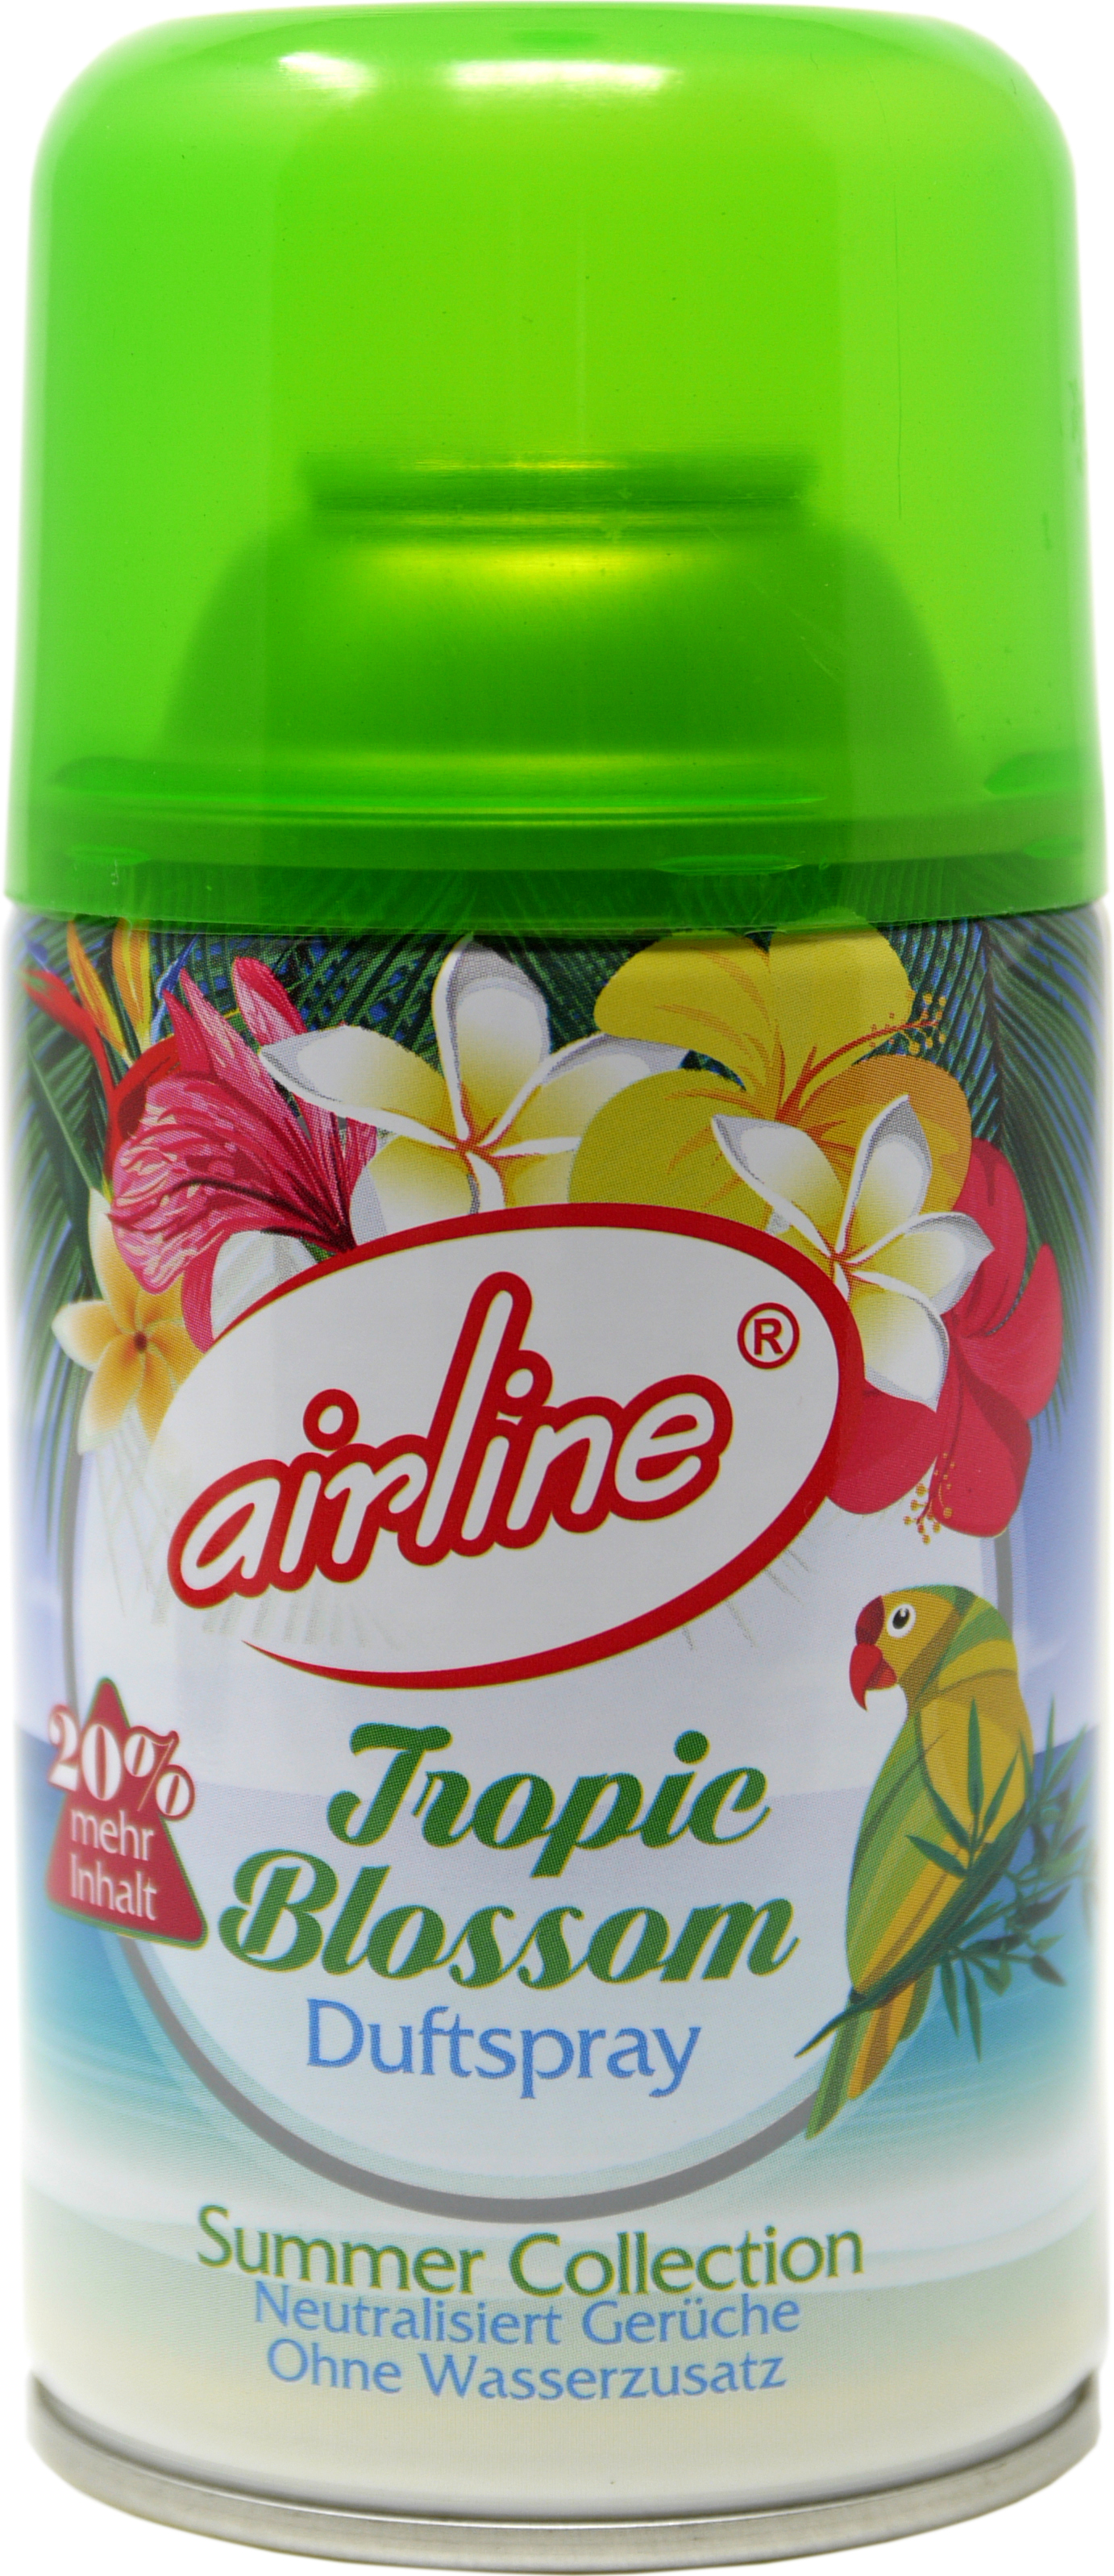 00531 - airline Summer Collection Tropic Blossom Nachfüllkartusche 300 ml